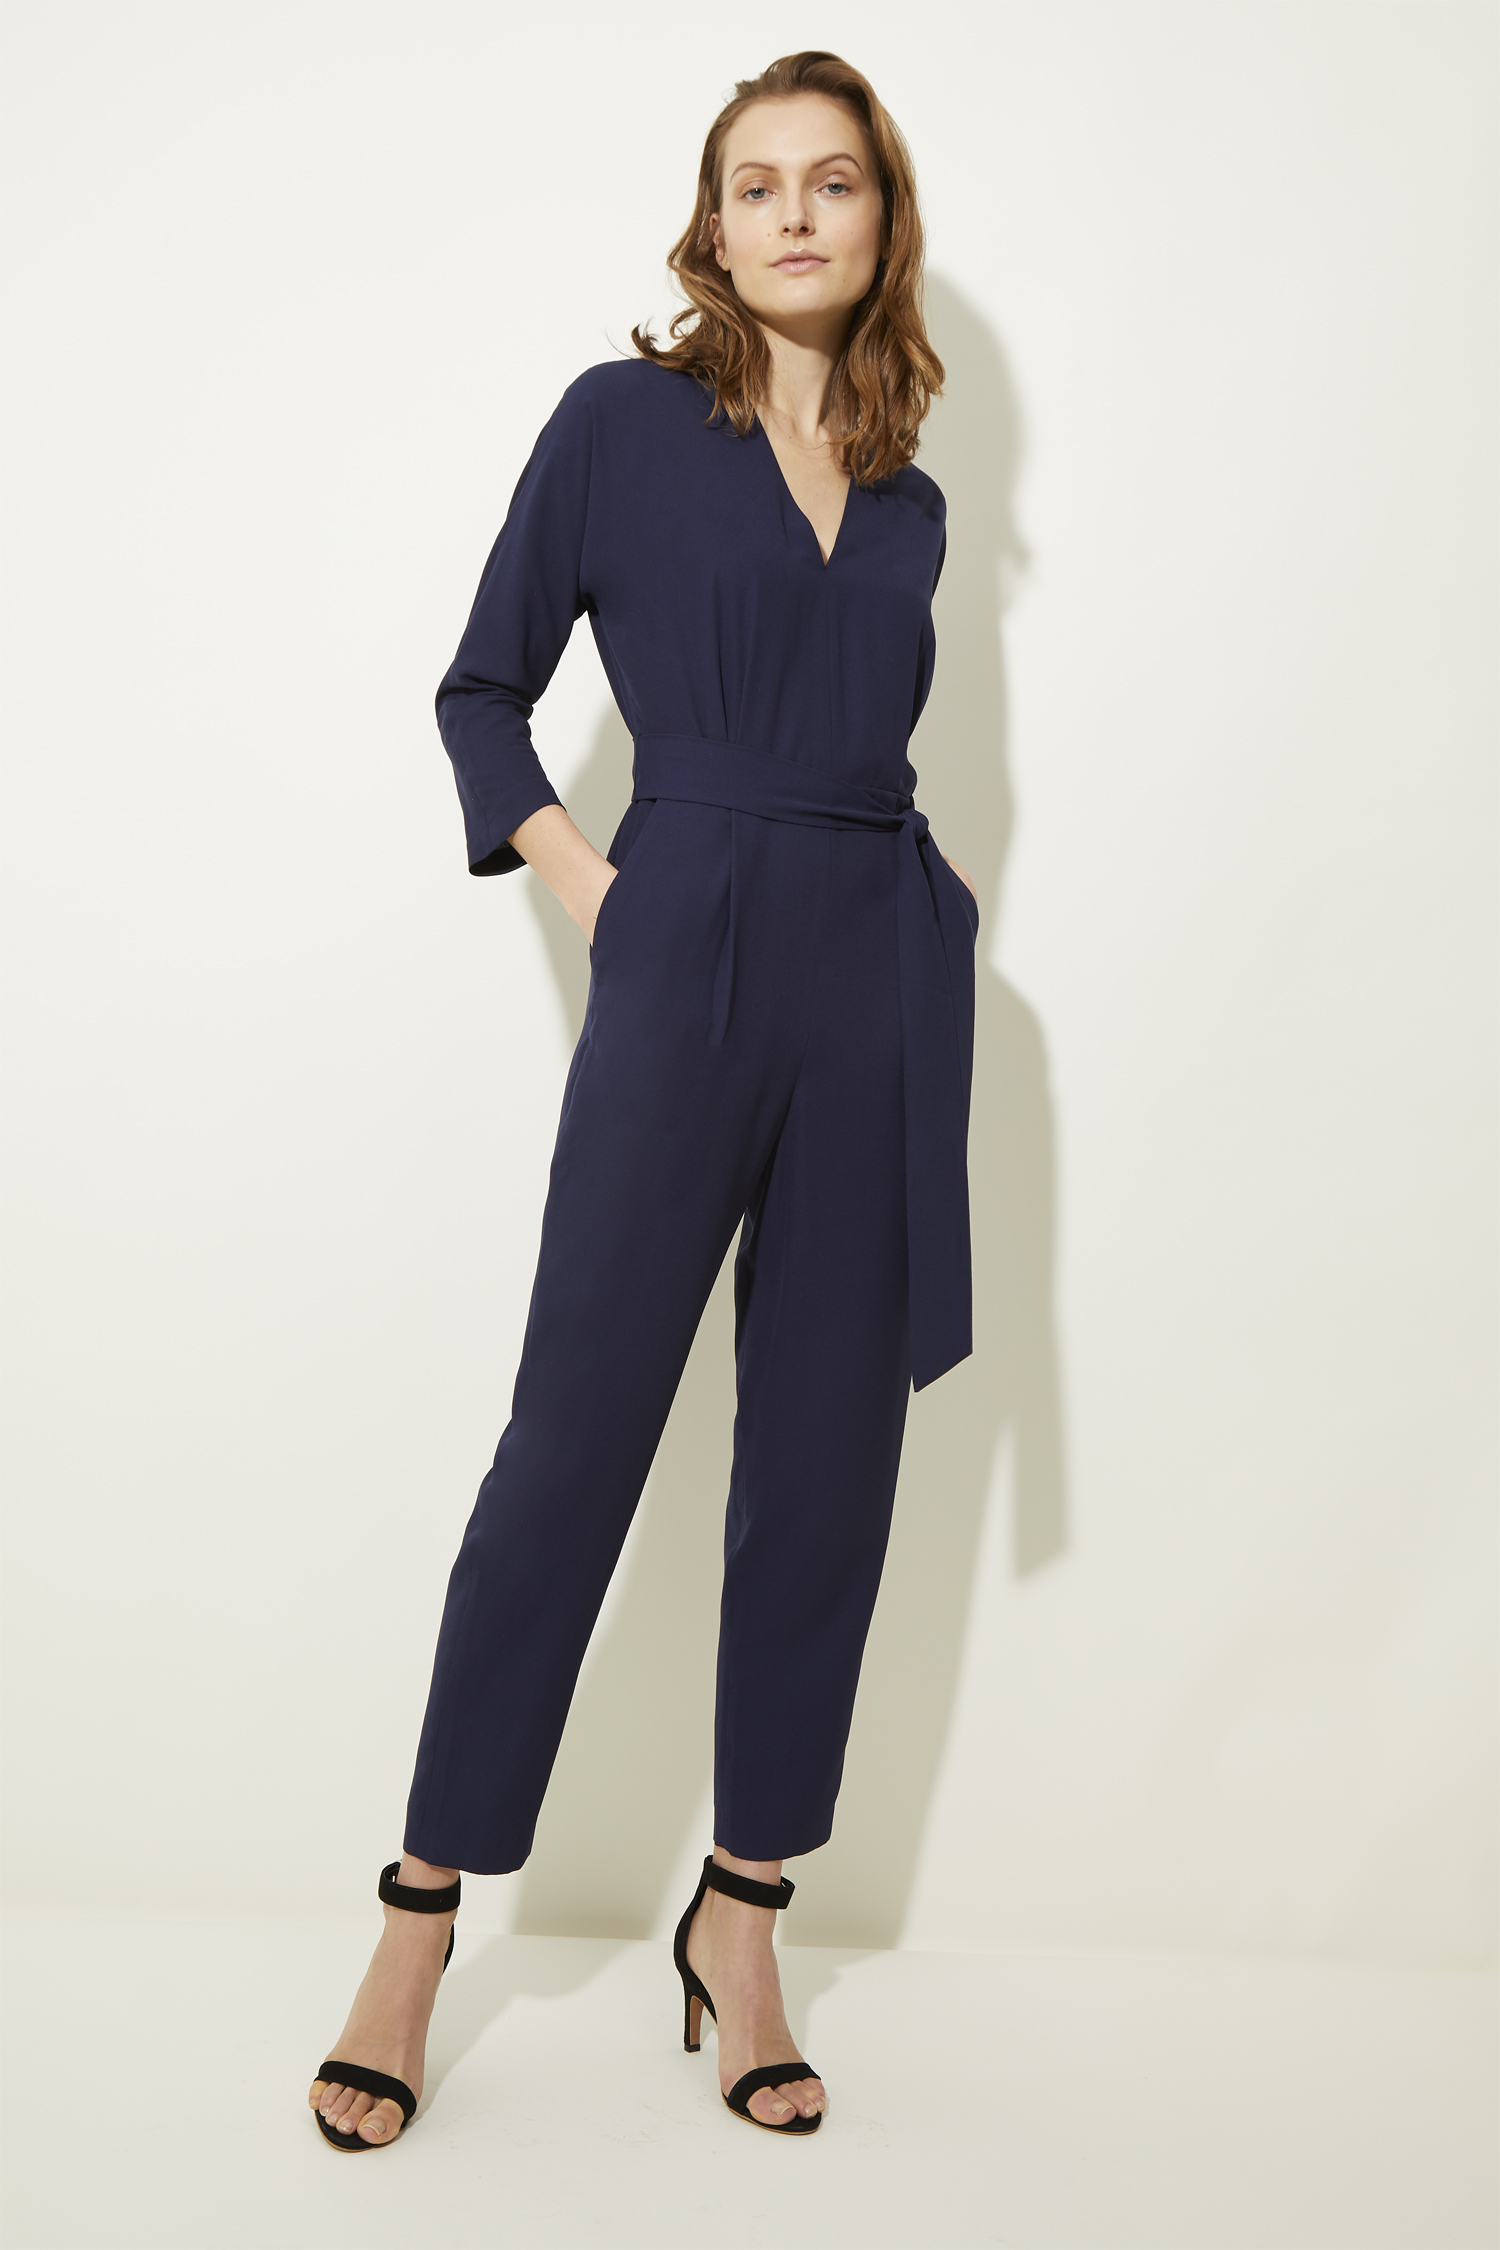 women's party jumpsuits